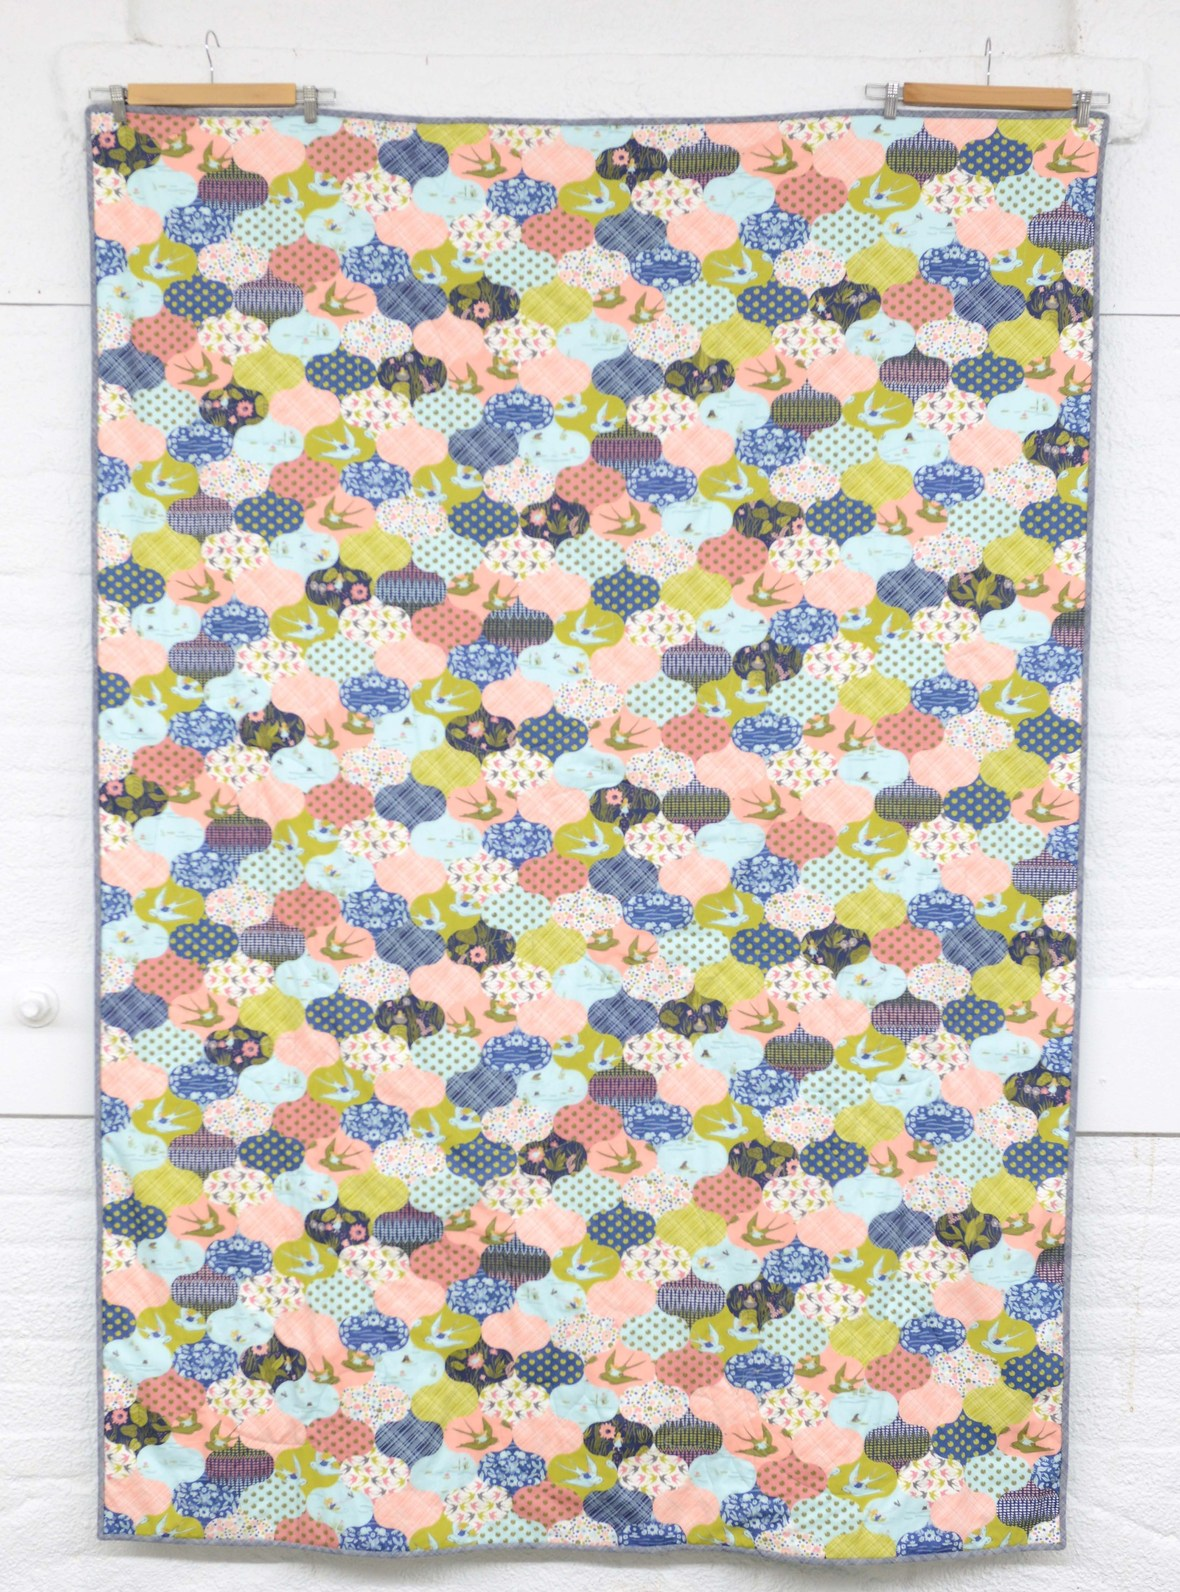 Thumbelina Fabric Quilt b - Copy